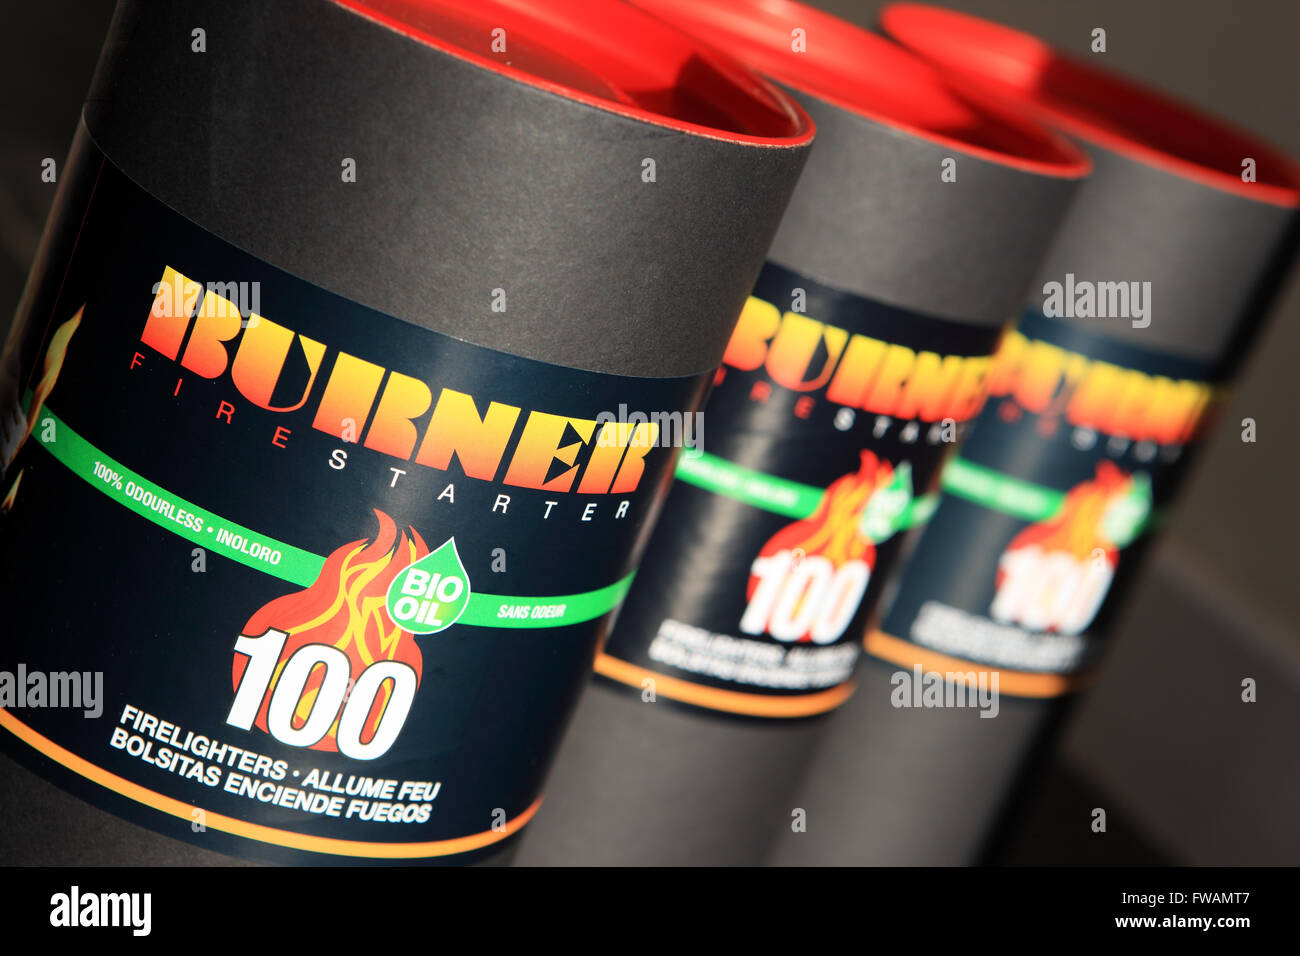 Tubs of Burner Fire lighters which are odourless - Stock Image